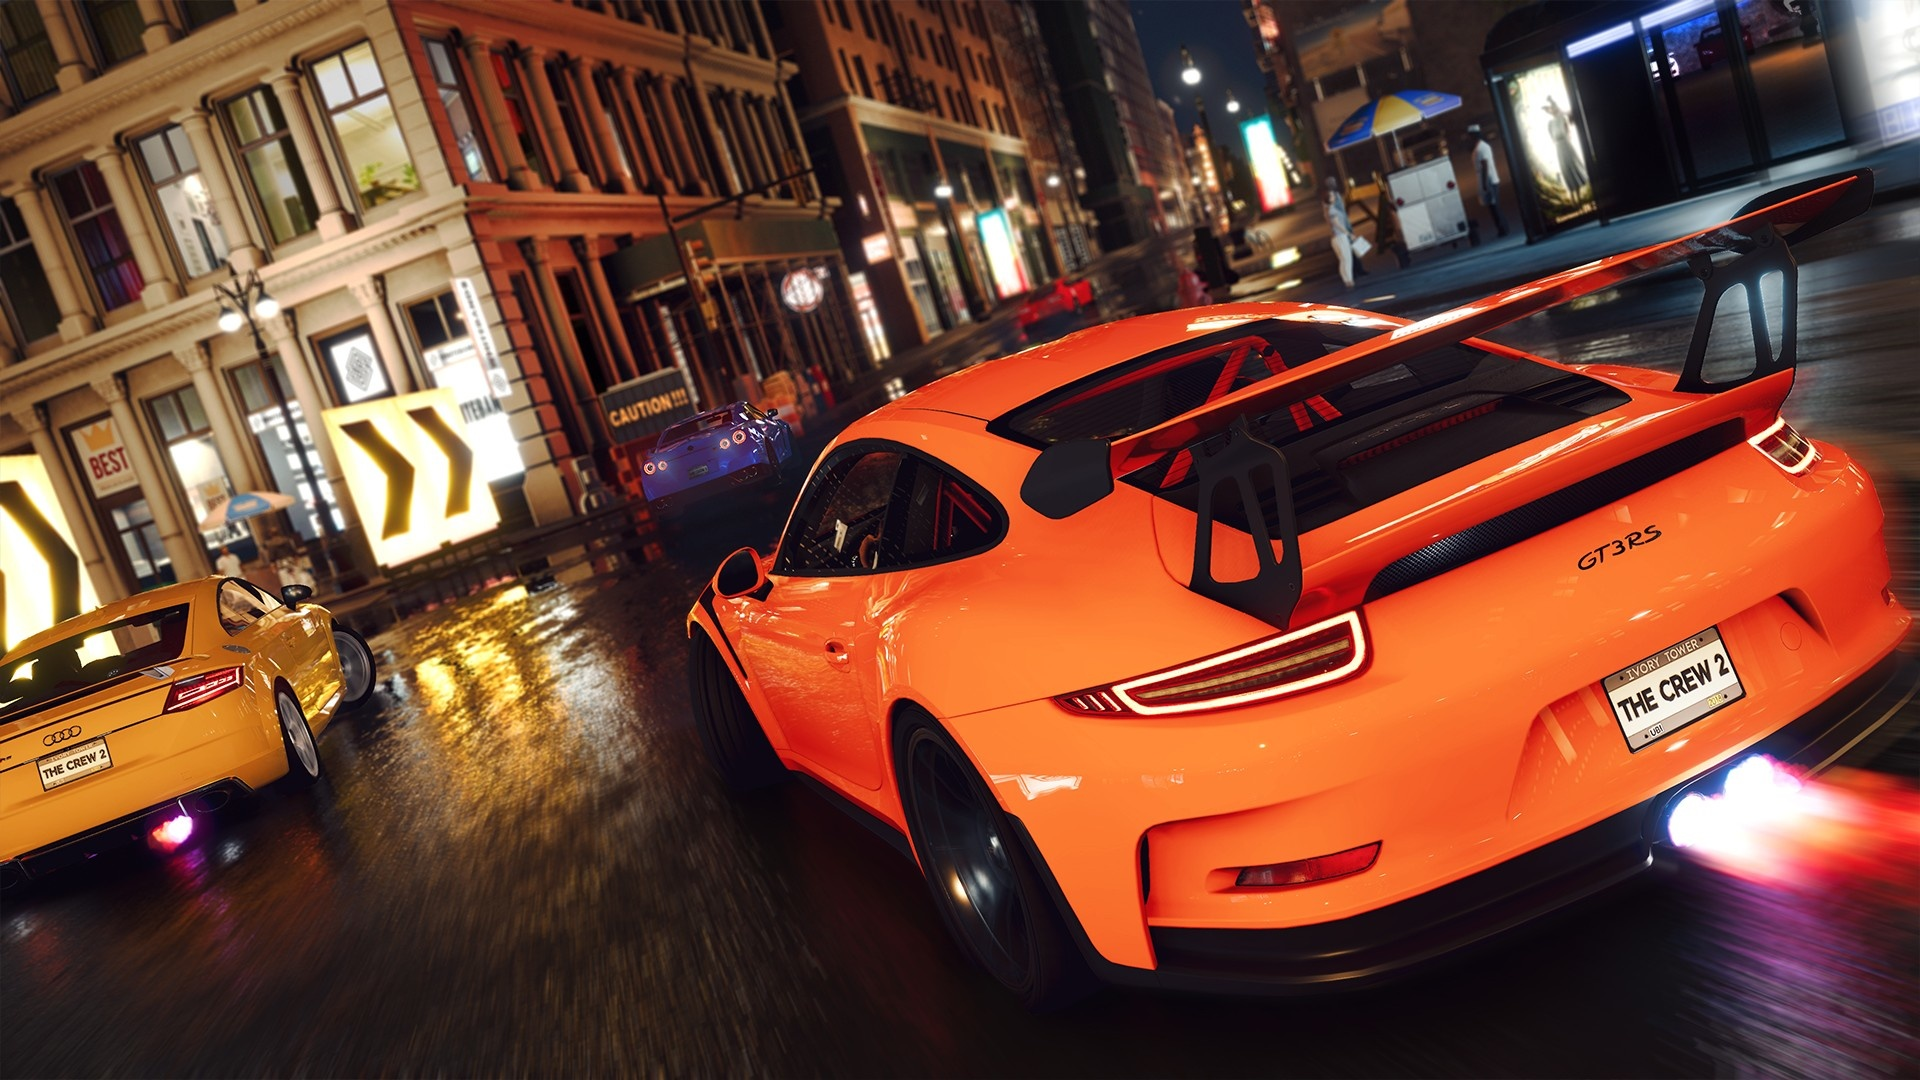 The Crew 2 PS4 Xbox One PC Review Racer Arcade Racer Ubisoft Porsche